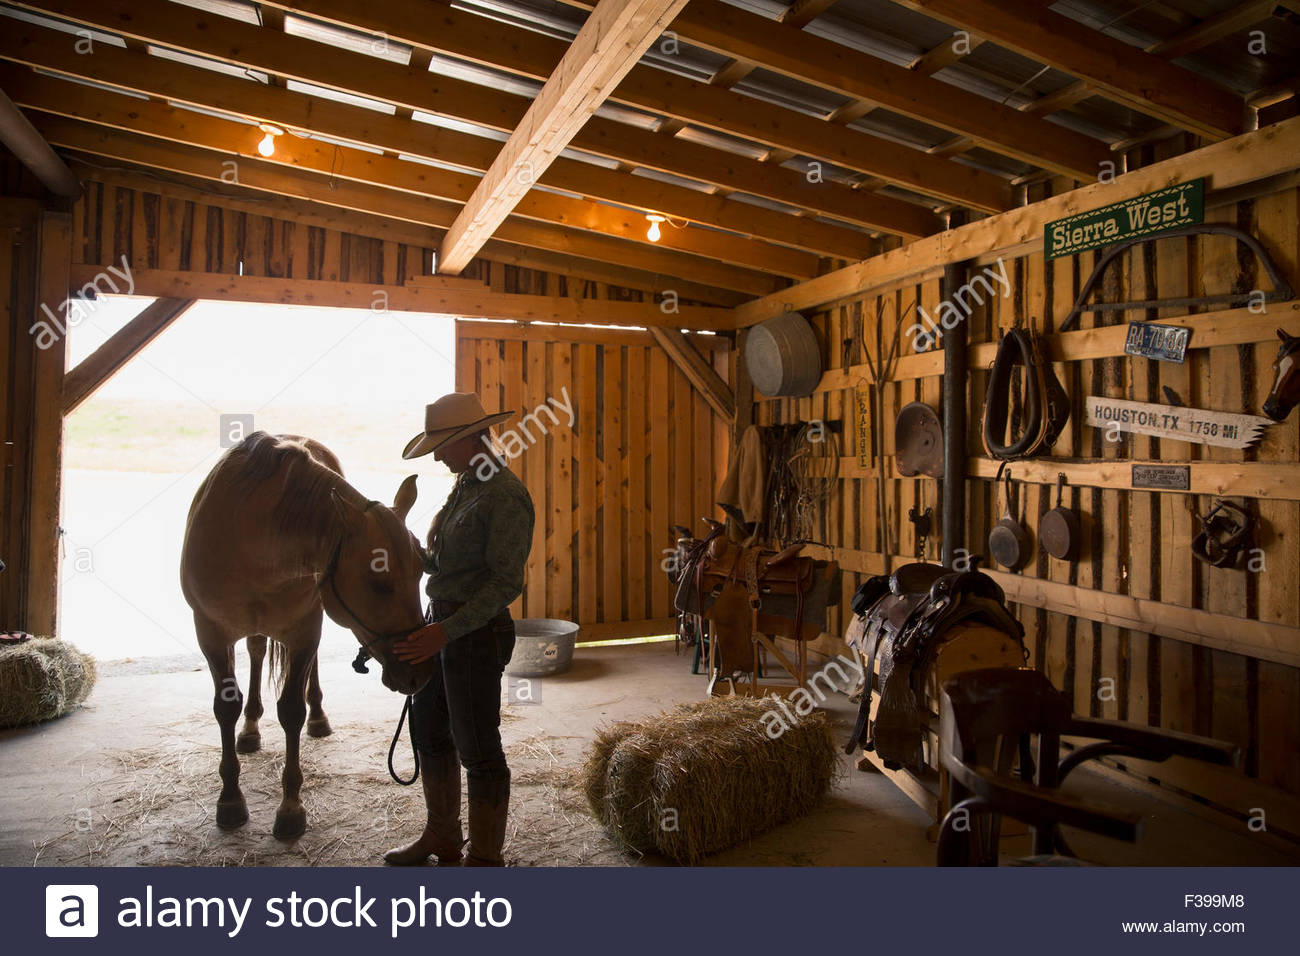 Female rancher with horse in stable - Stock Image